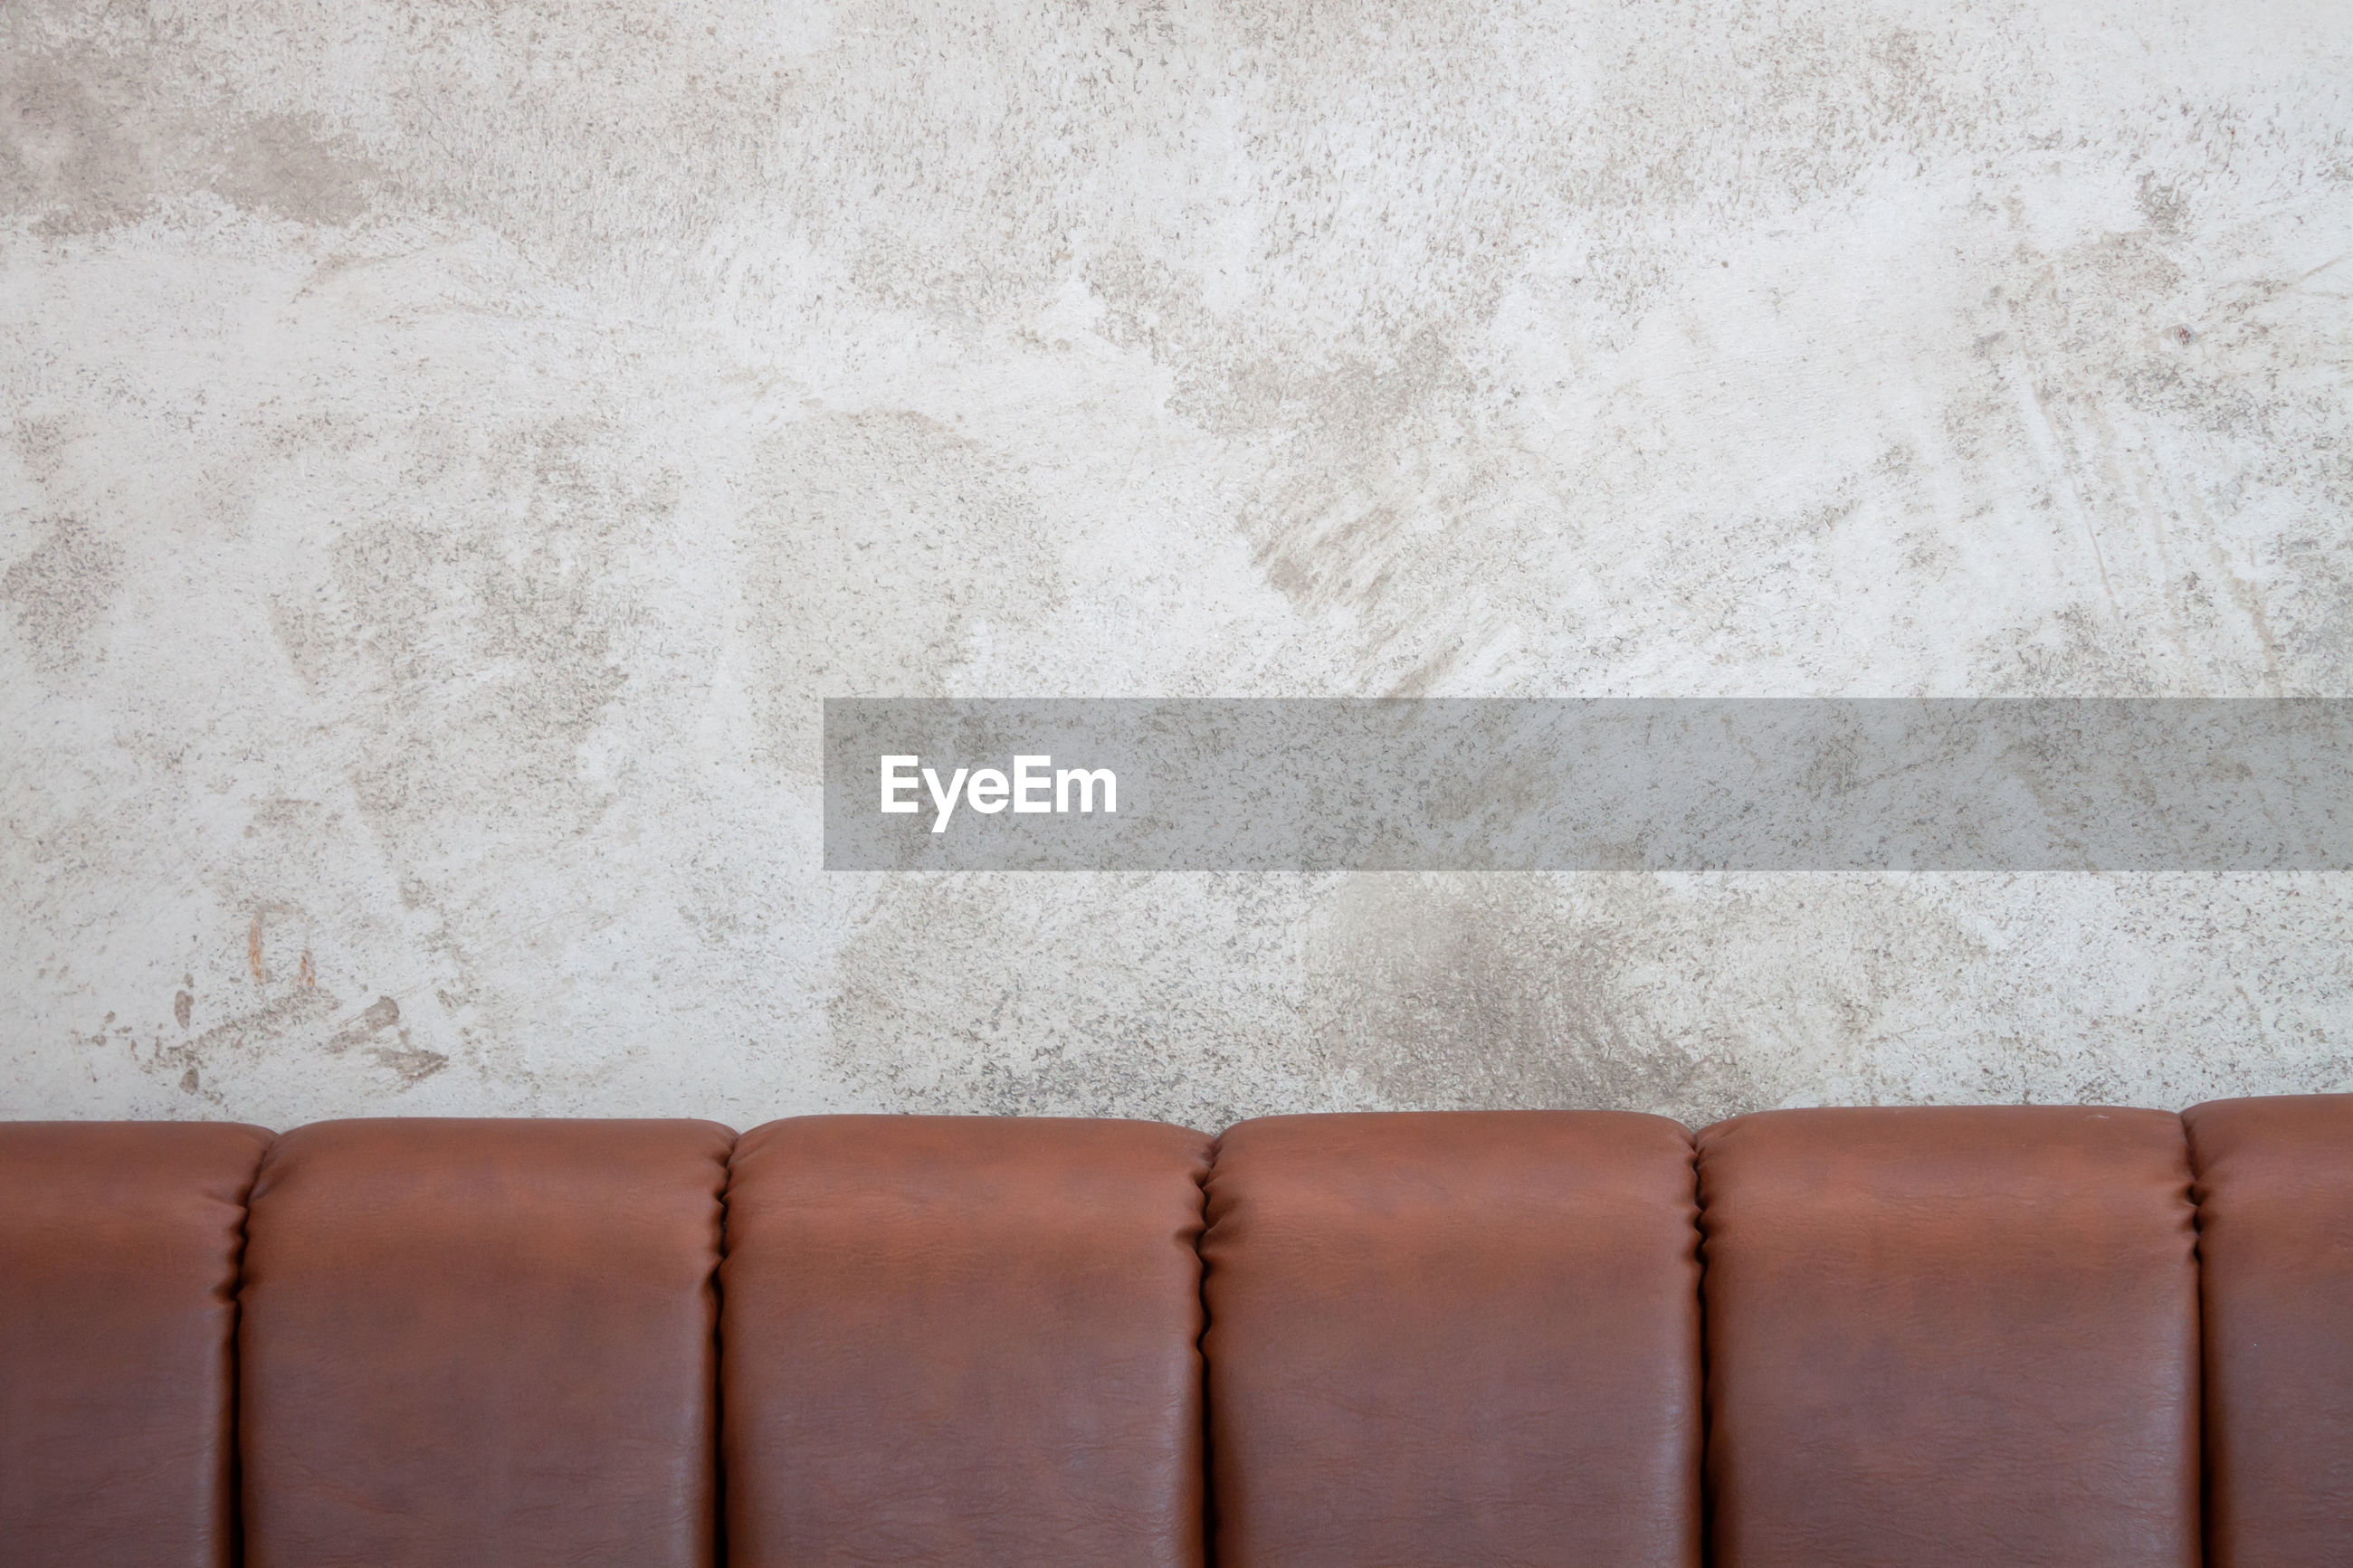 CLOSE-UP OF WHITE WALL WITH CONCRETE